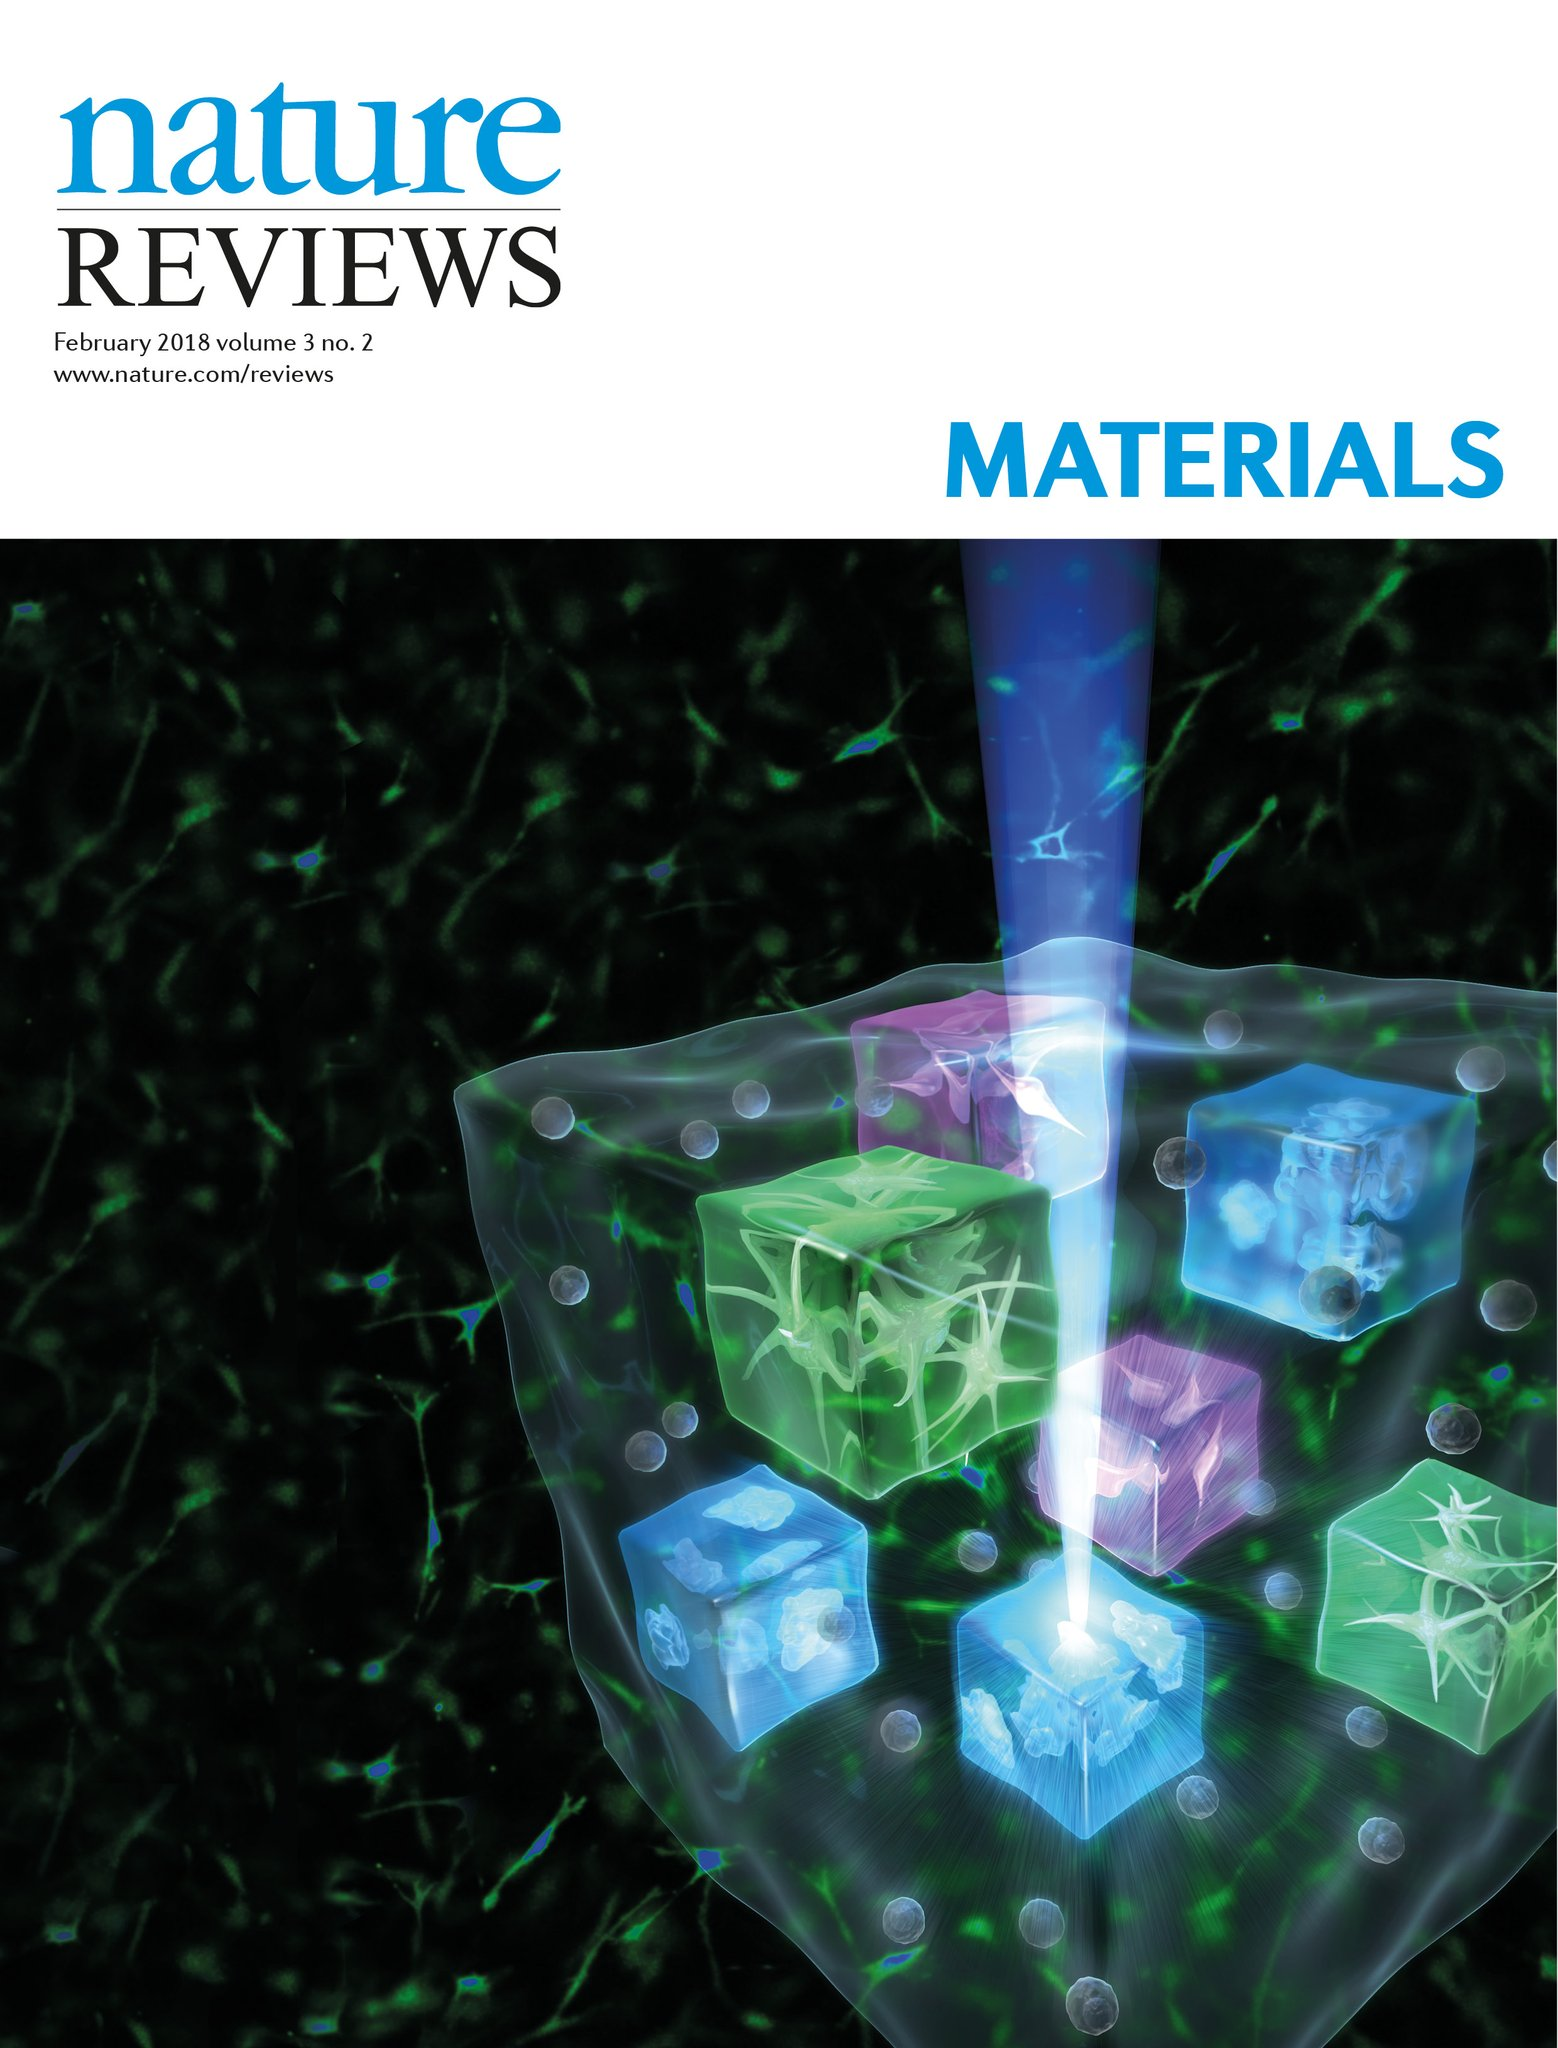 Ruskowitz 2018 Nature Revies Materials Cover